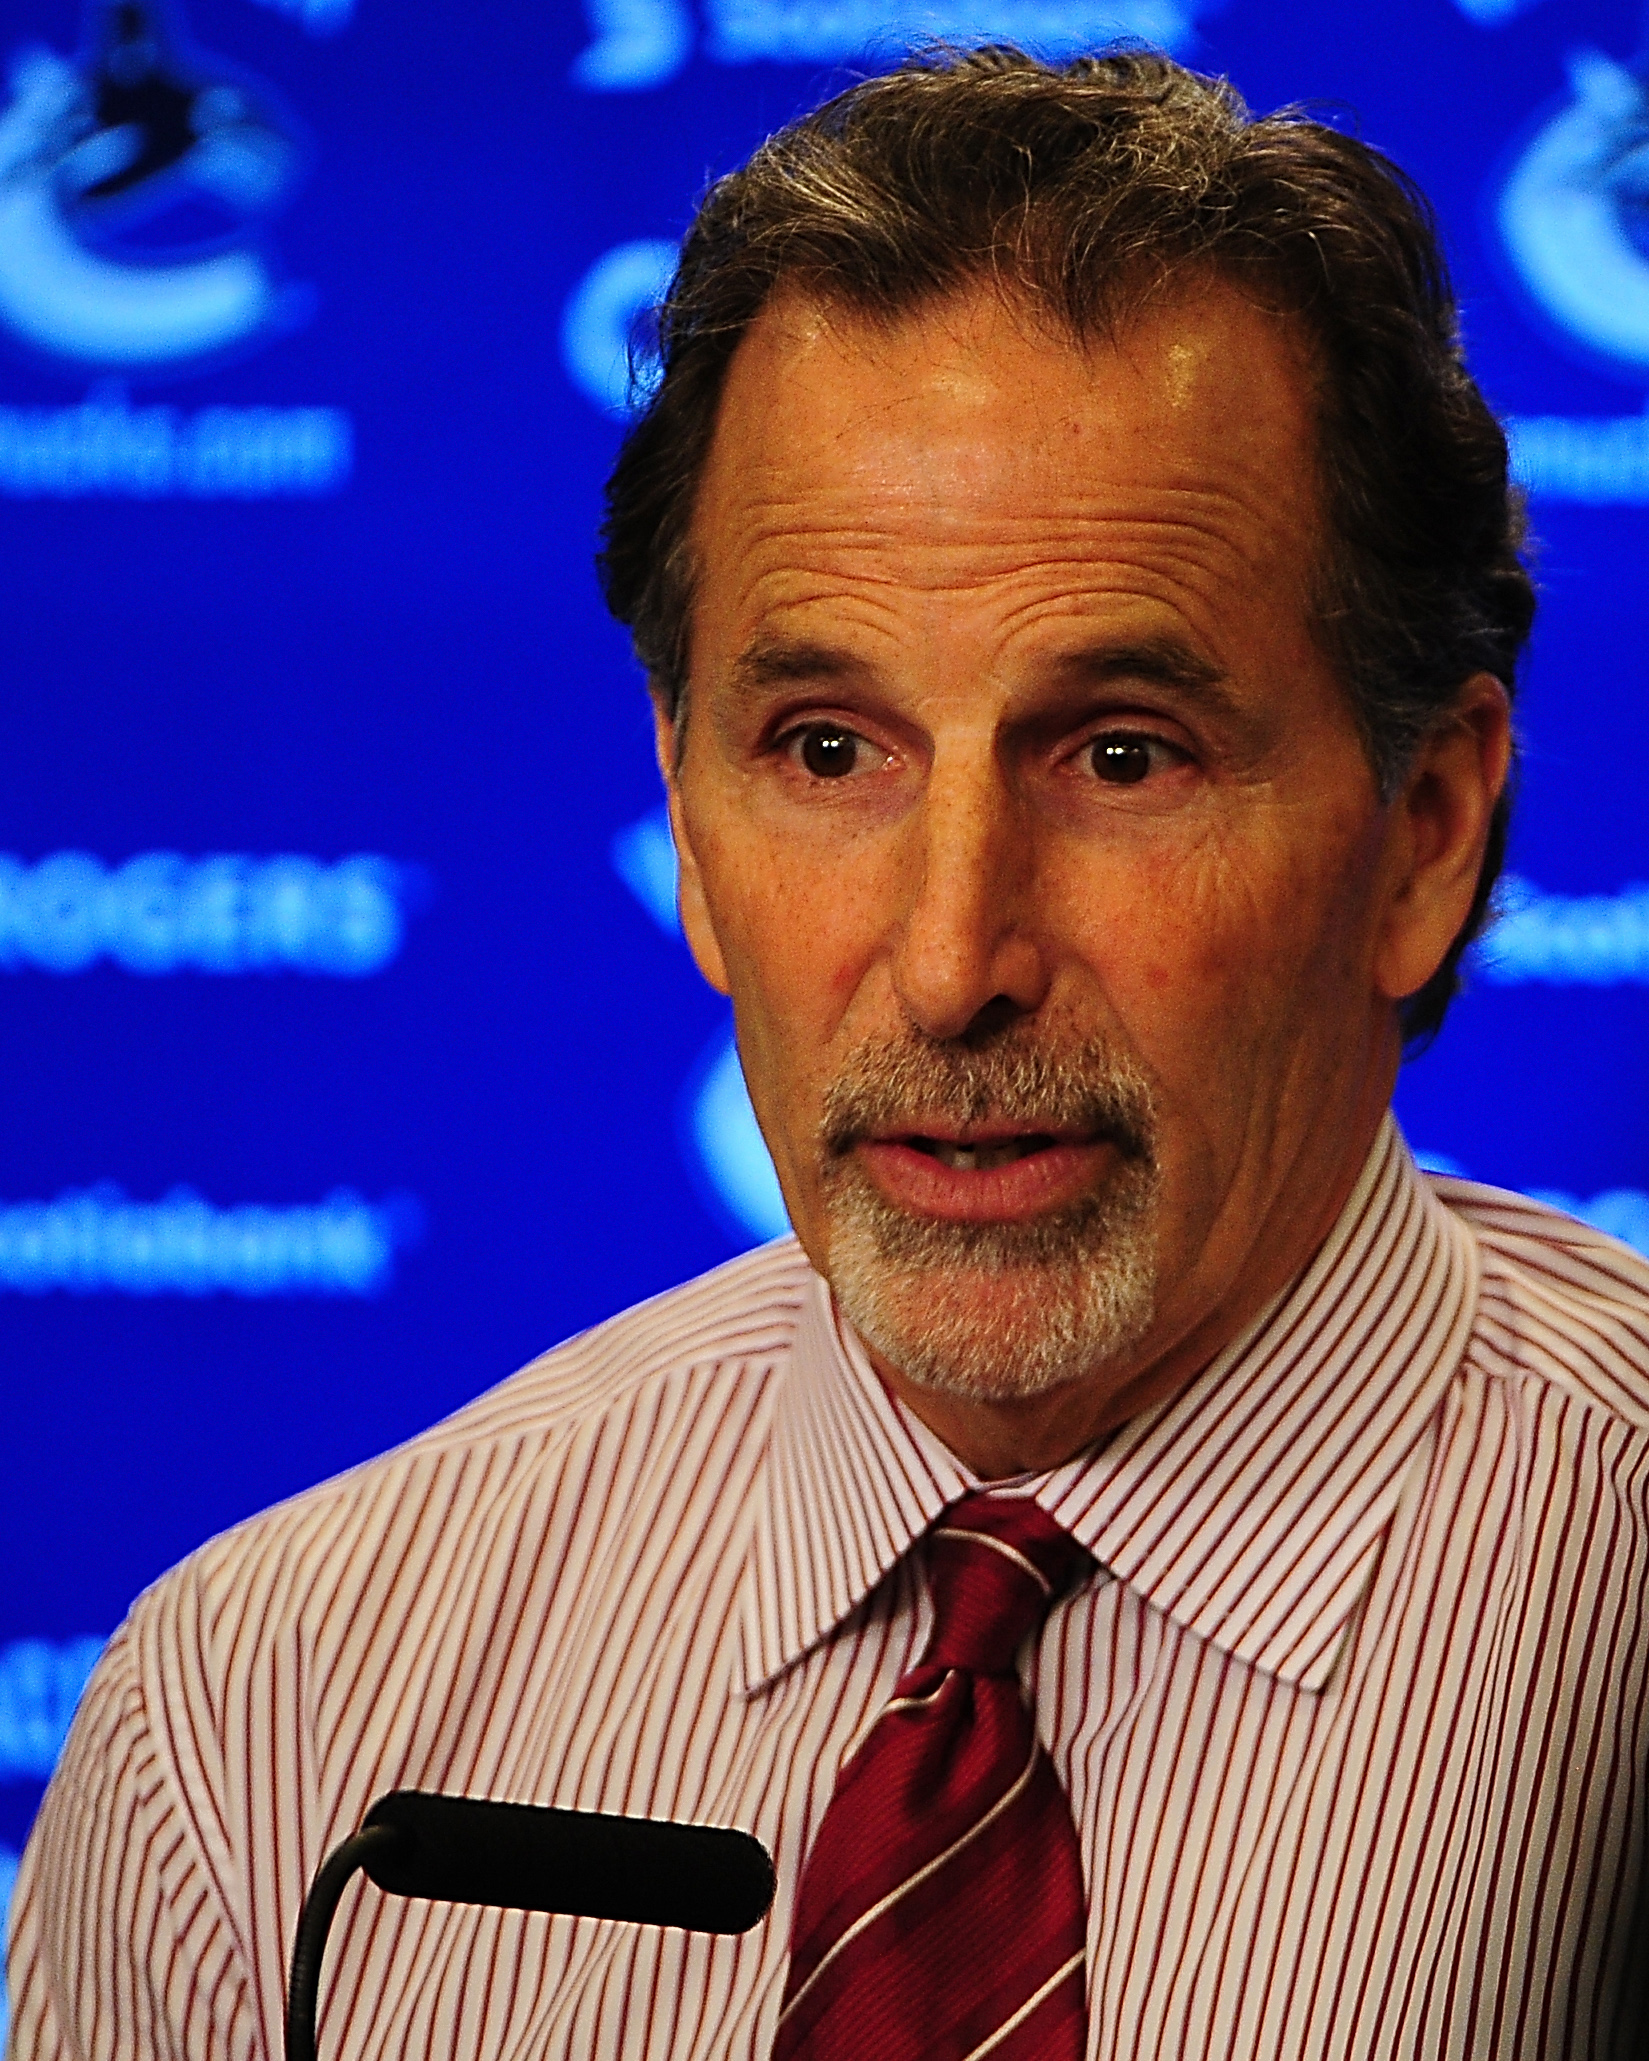 Did Mike Gillis deserve to be fired by Vancouver?